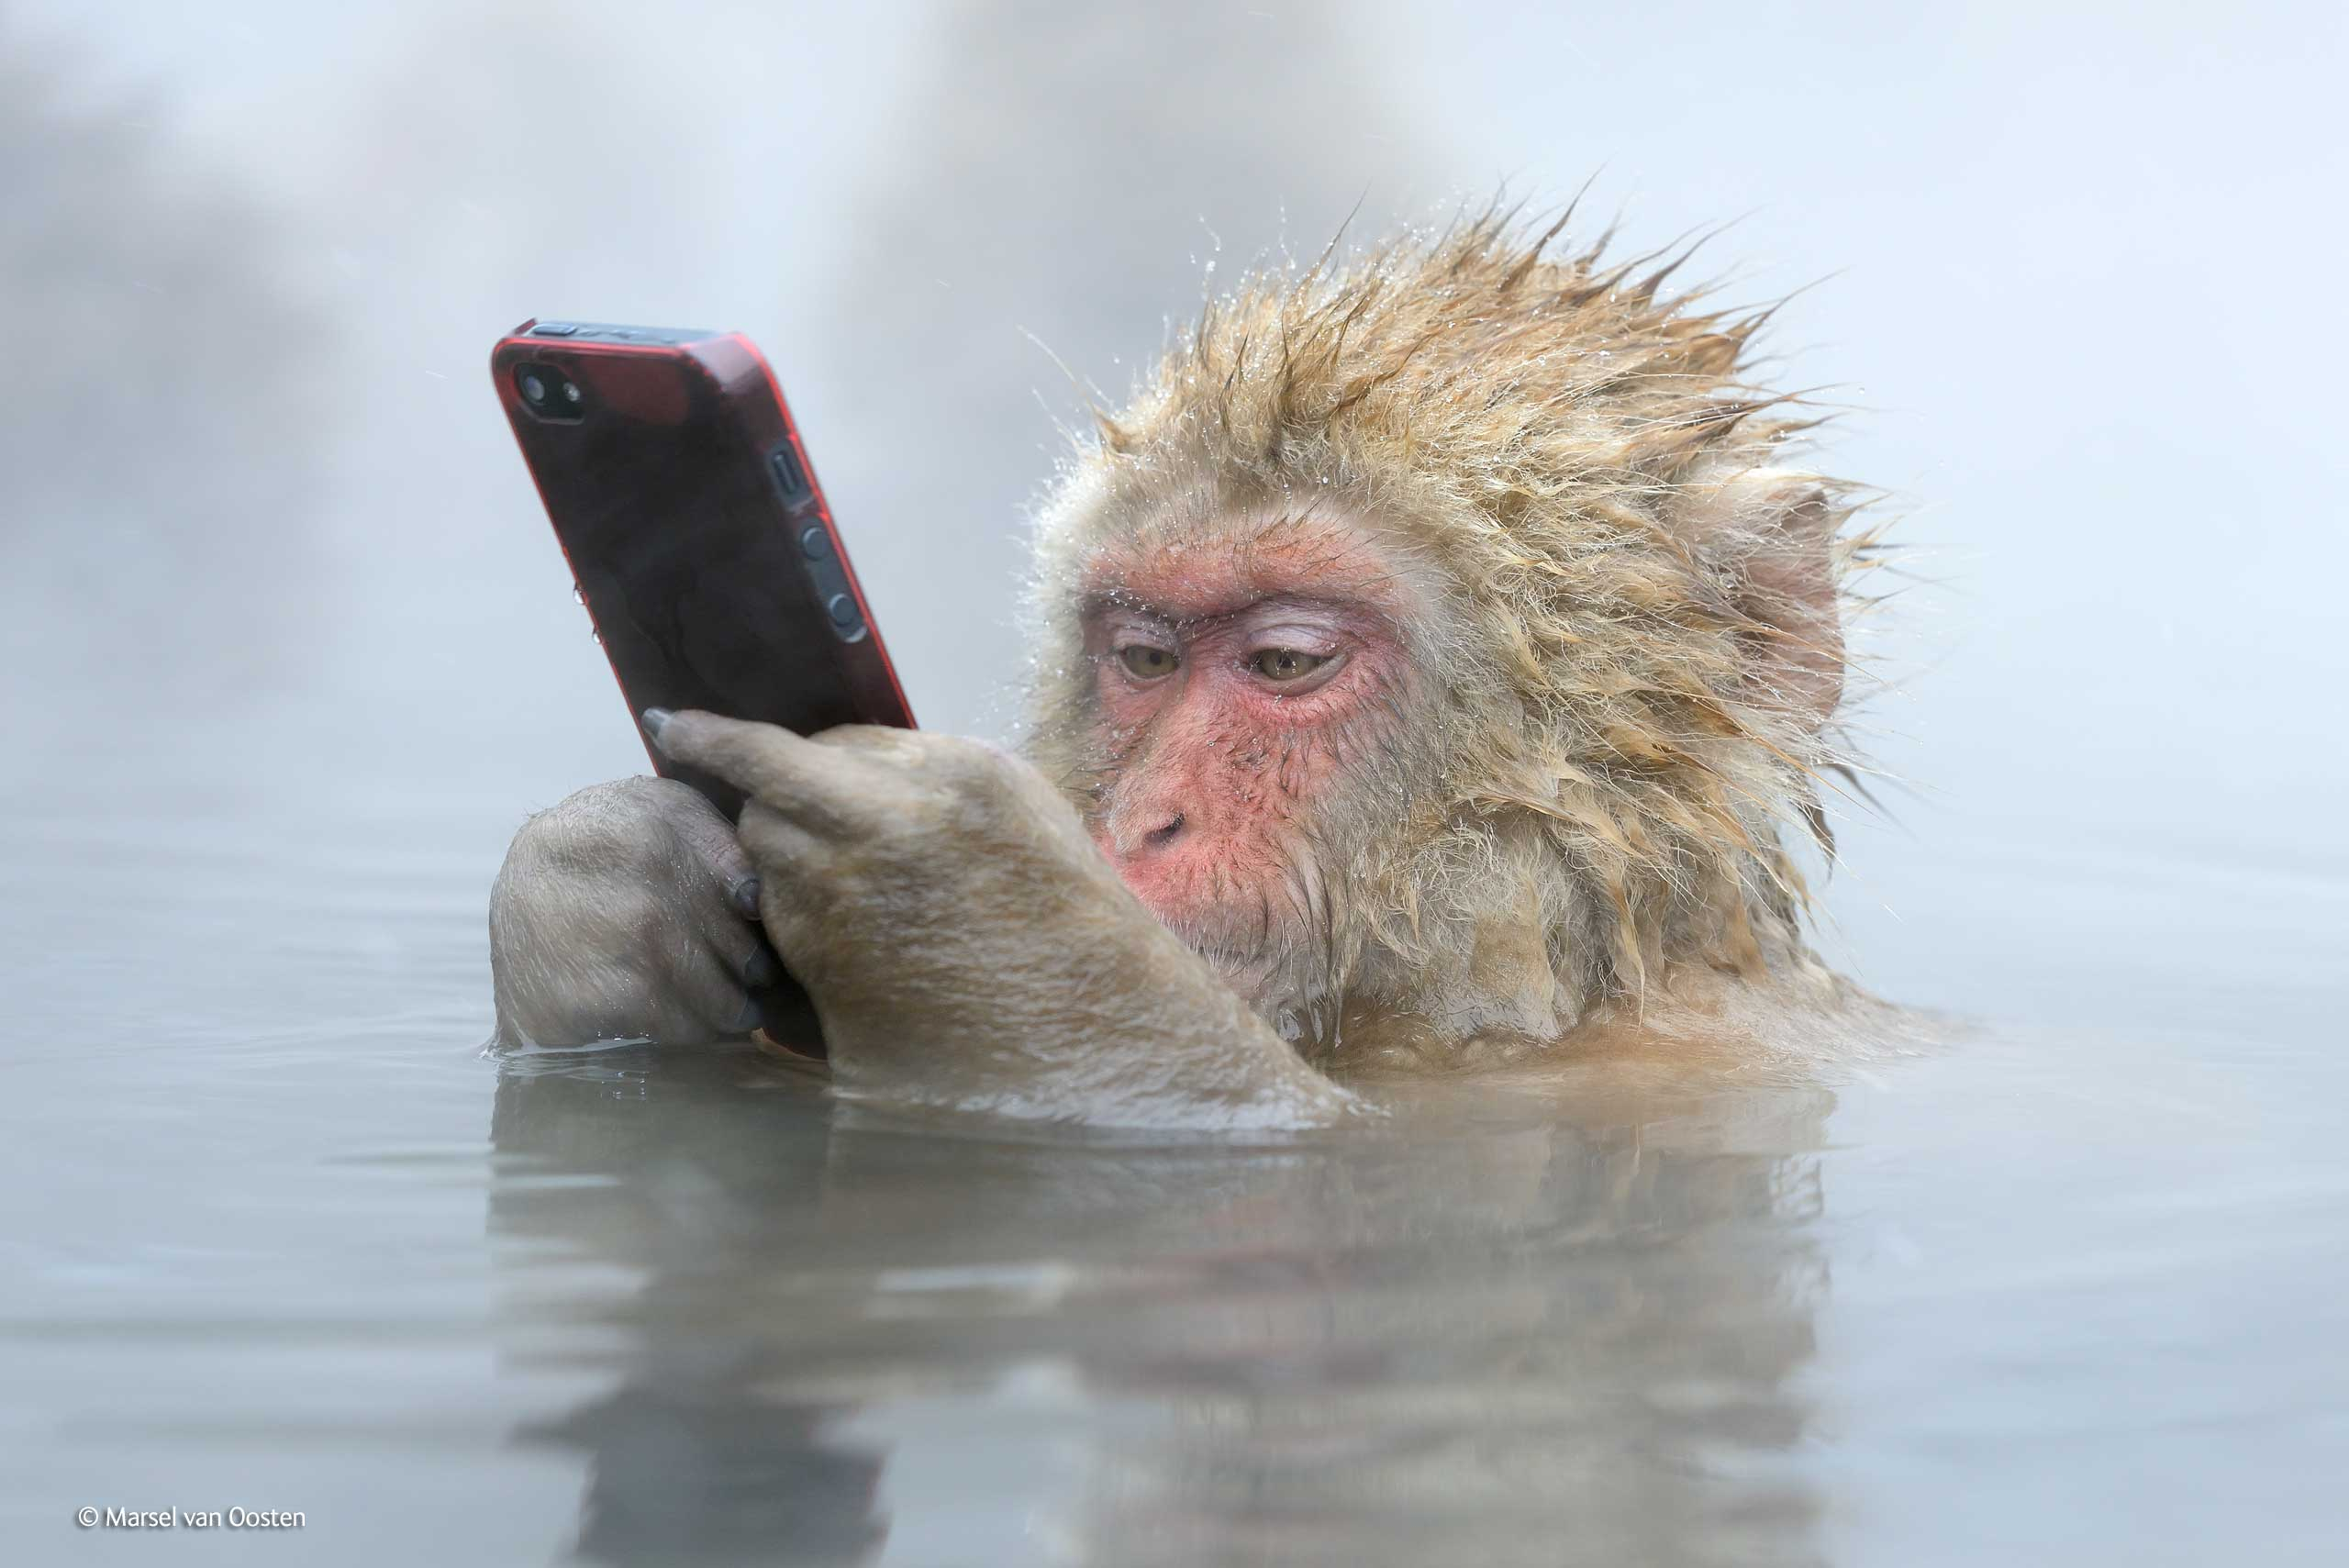 monkey with iphone